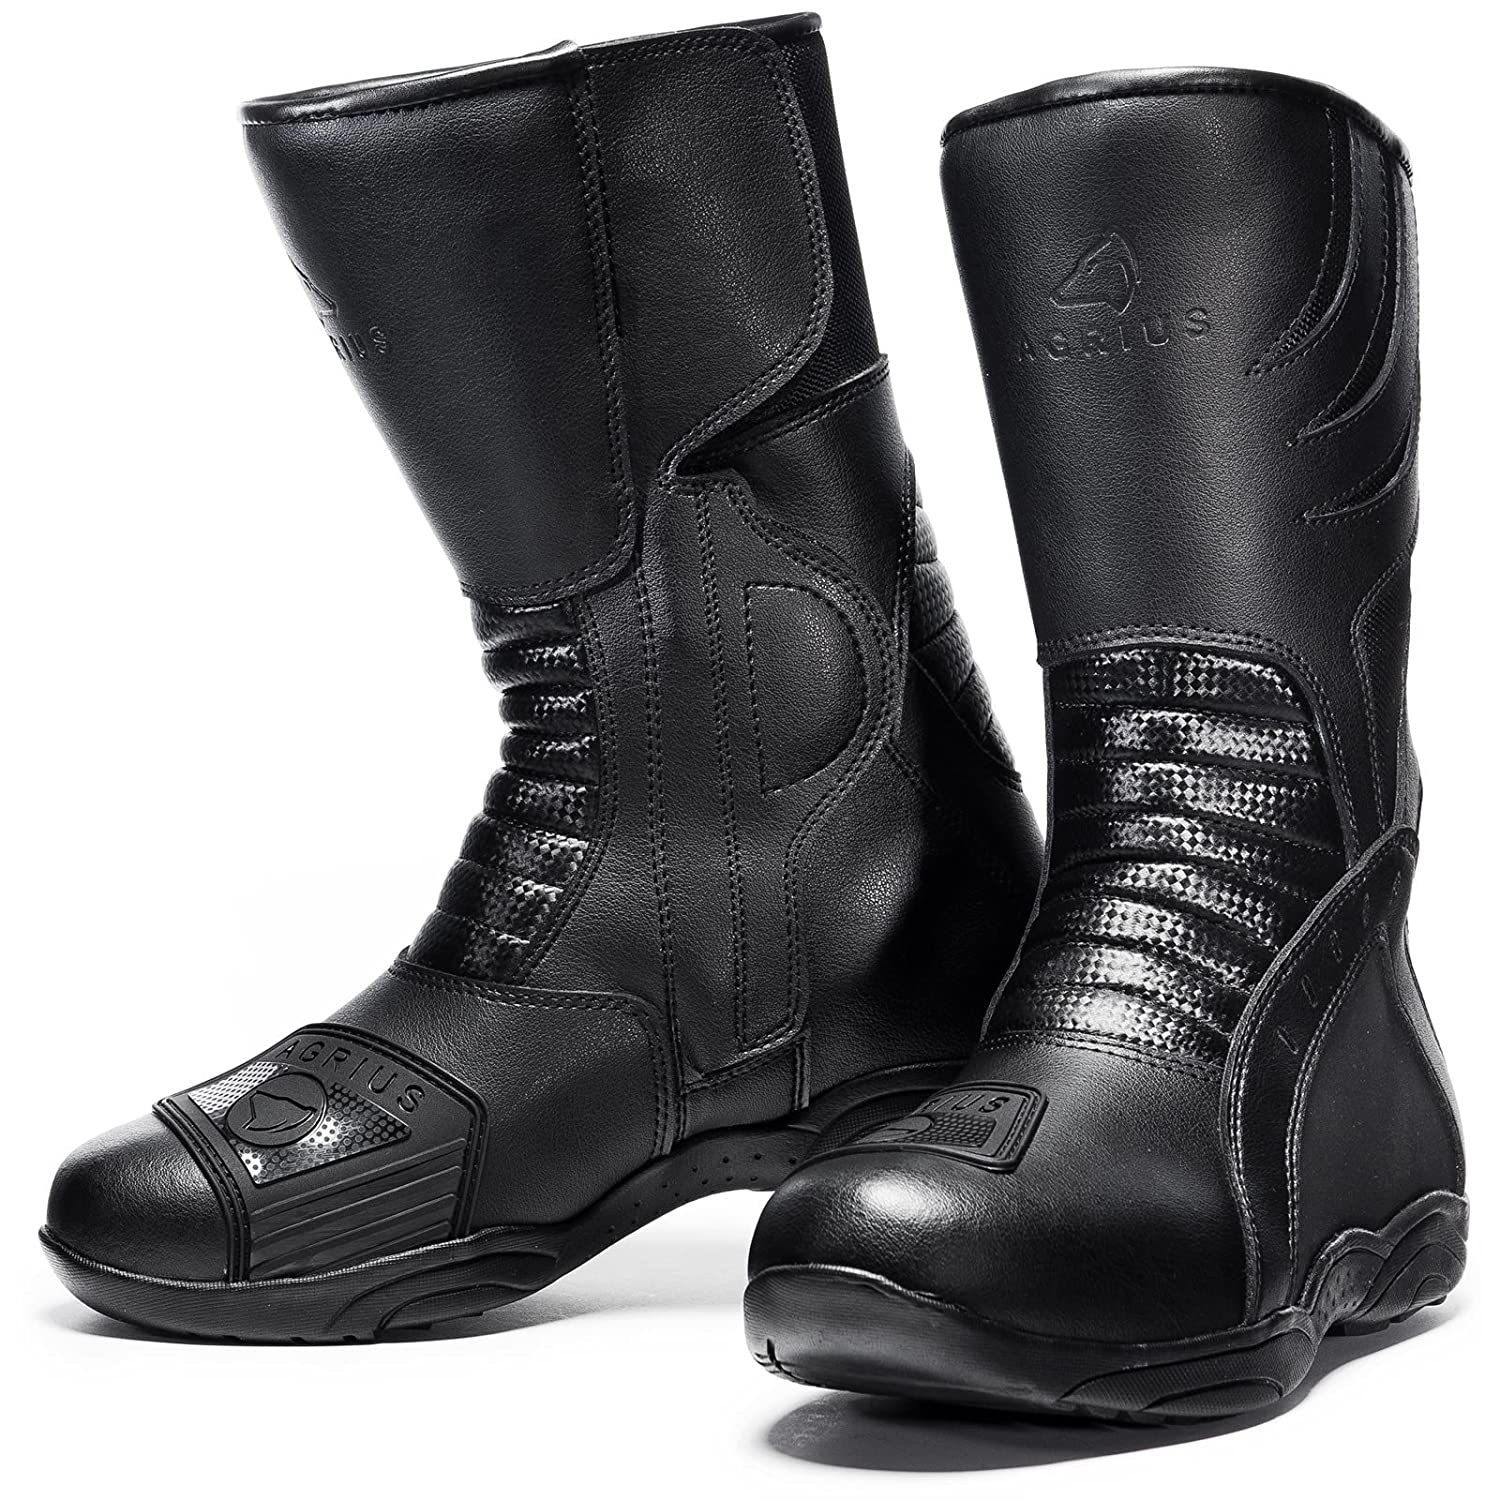 Motorbike Boots : Amazon.co.uk